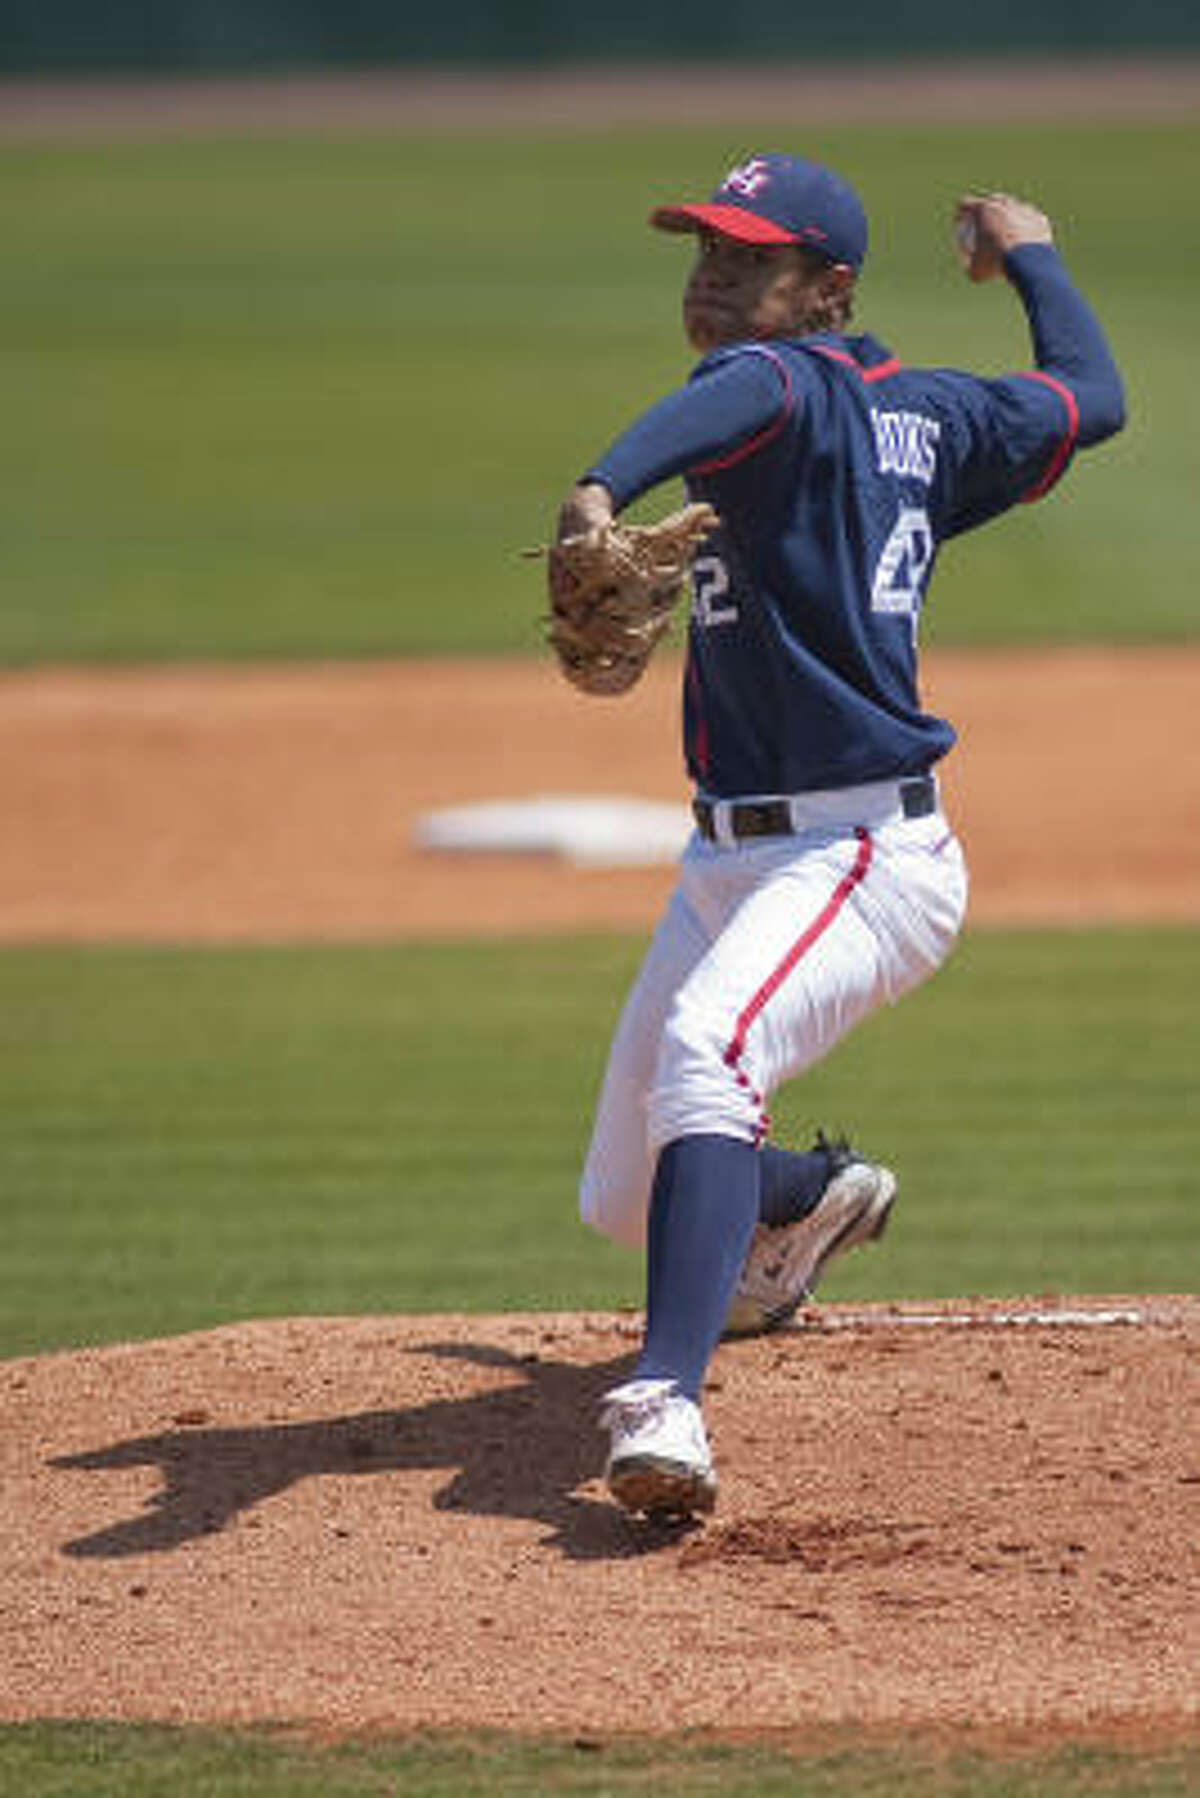 University of Houston pitcher Eric Brooks earned the win over the University of Central Florida, allowing three earned runs on seven hits in five innings.